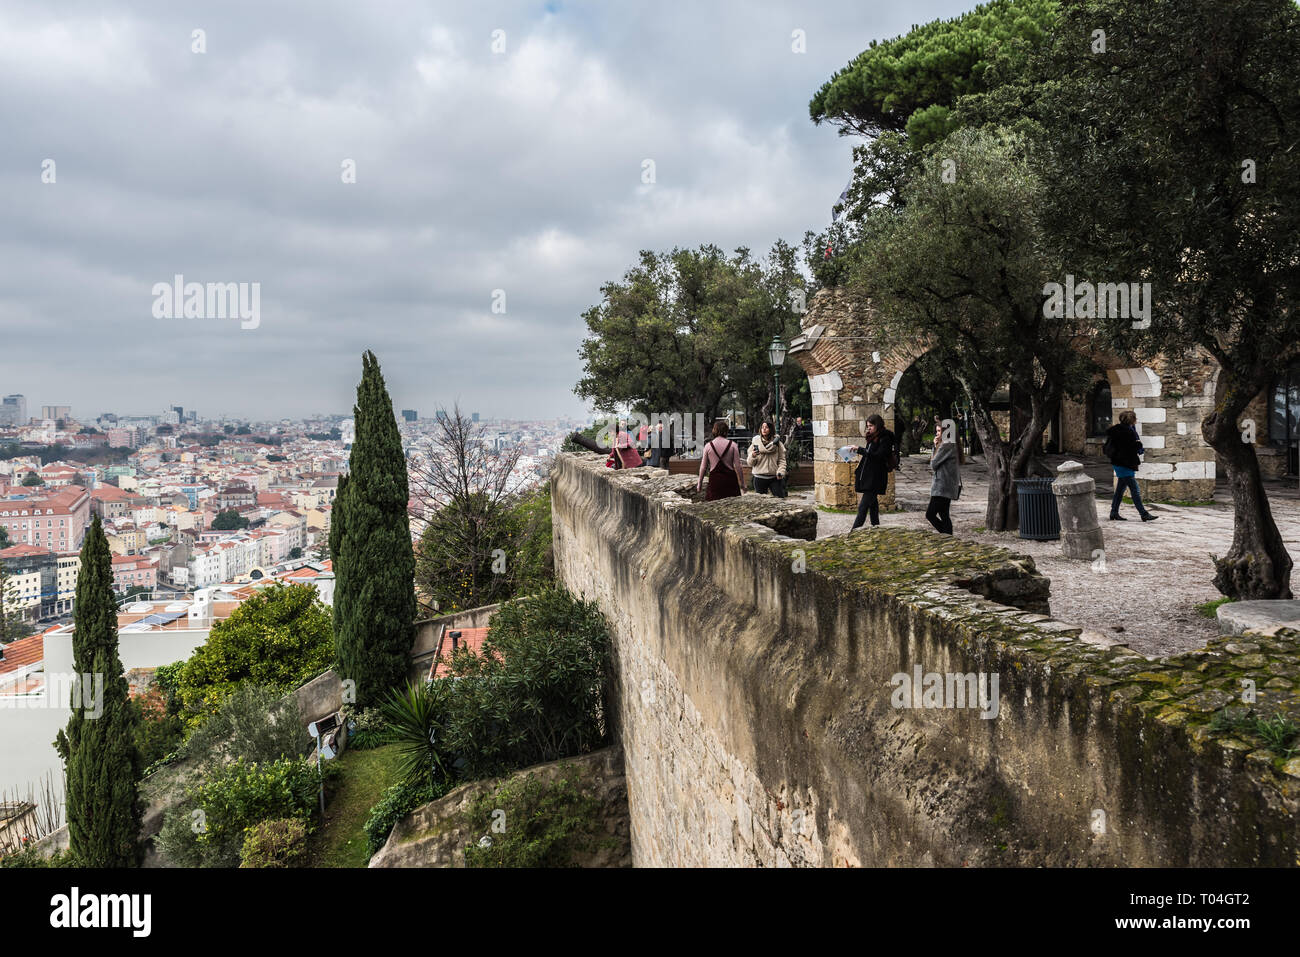 Lisbon, Portugal - 12 26 2018: View from the old Saint George Castle over the defensive wall and a part of the city - Stock Image